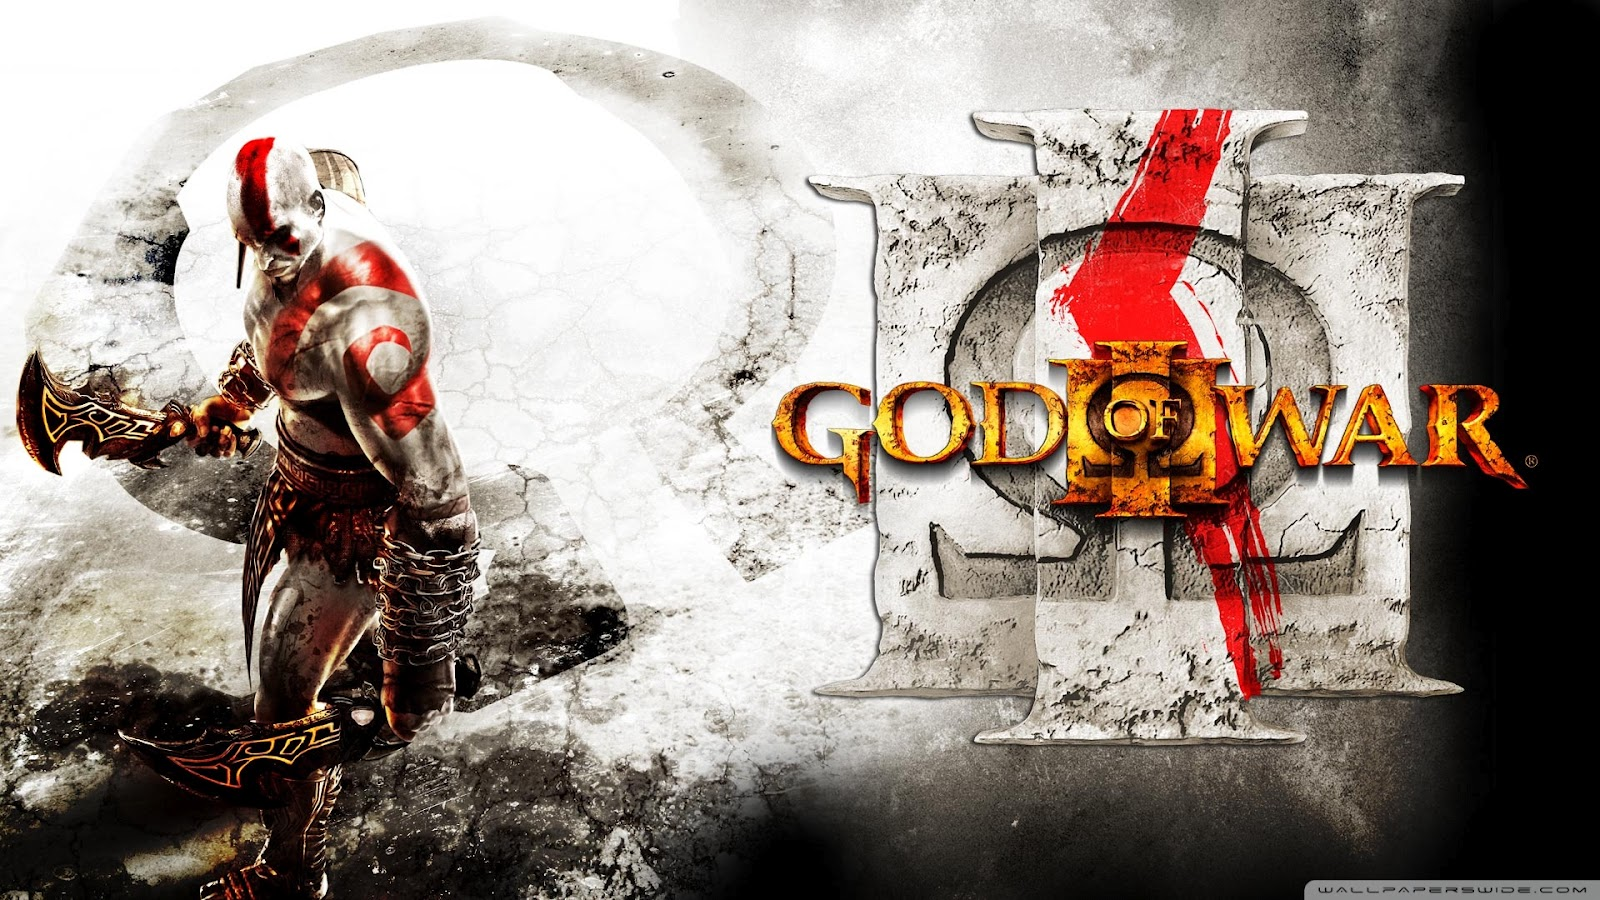 http://2.bp.blogspot.com/-9Xldxnz9IbY/T8OzdZ-c9AI/AAAAAAAACng/HP9-becy0dE/s1600/god_of_war_iii_4-wallpaper-1920x1080.jpg